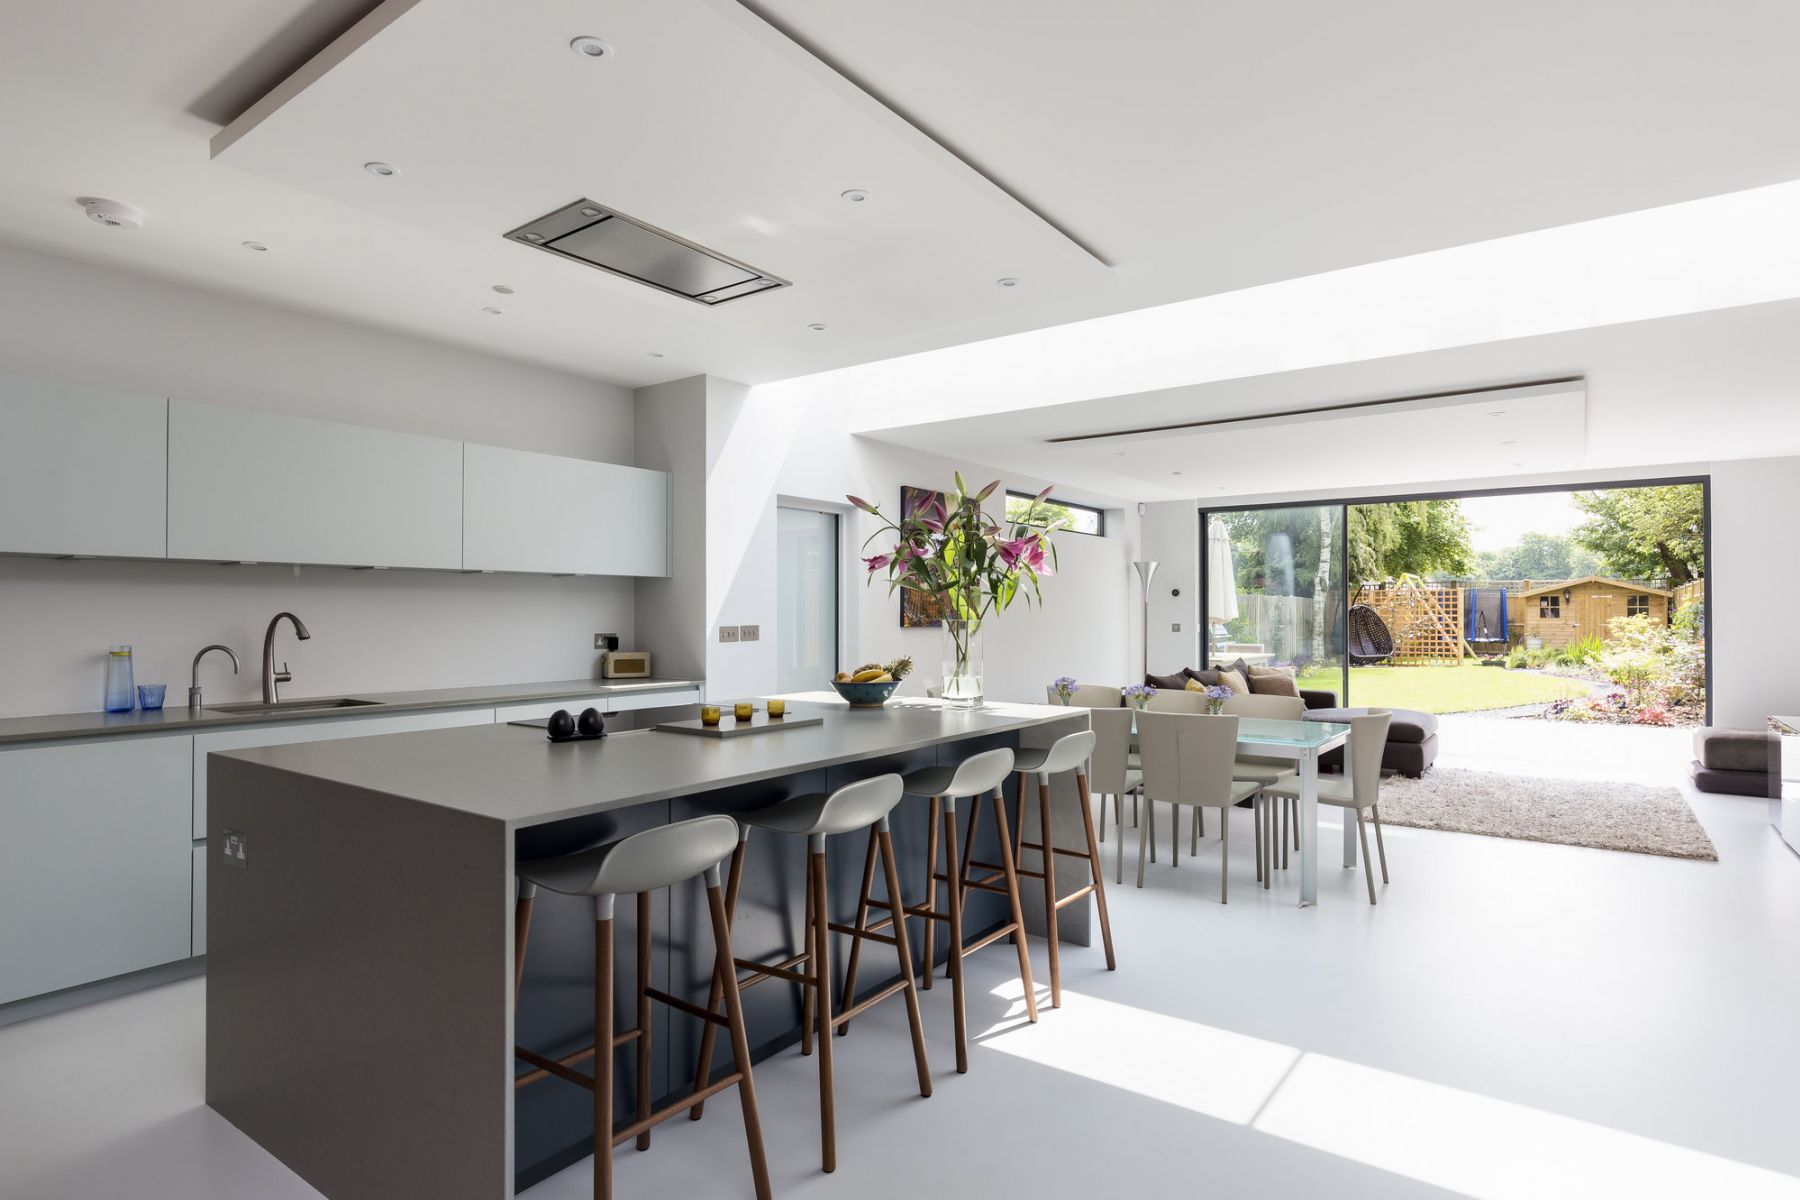 Rear house kitchen extension in Dulwich, London | Building projects ...